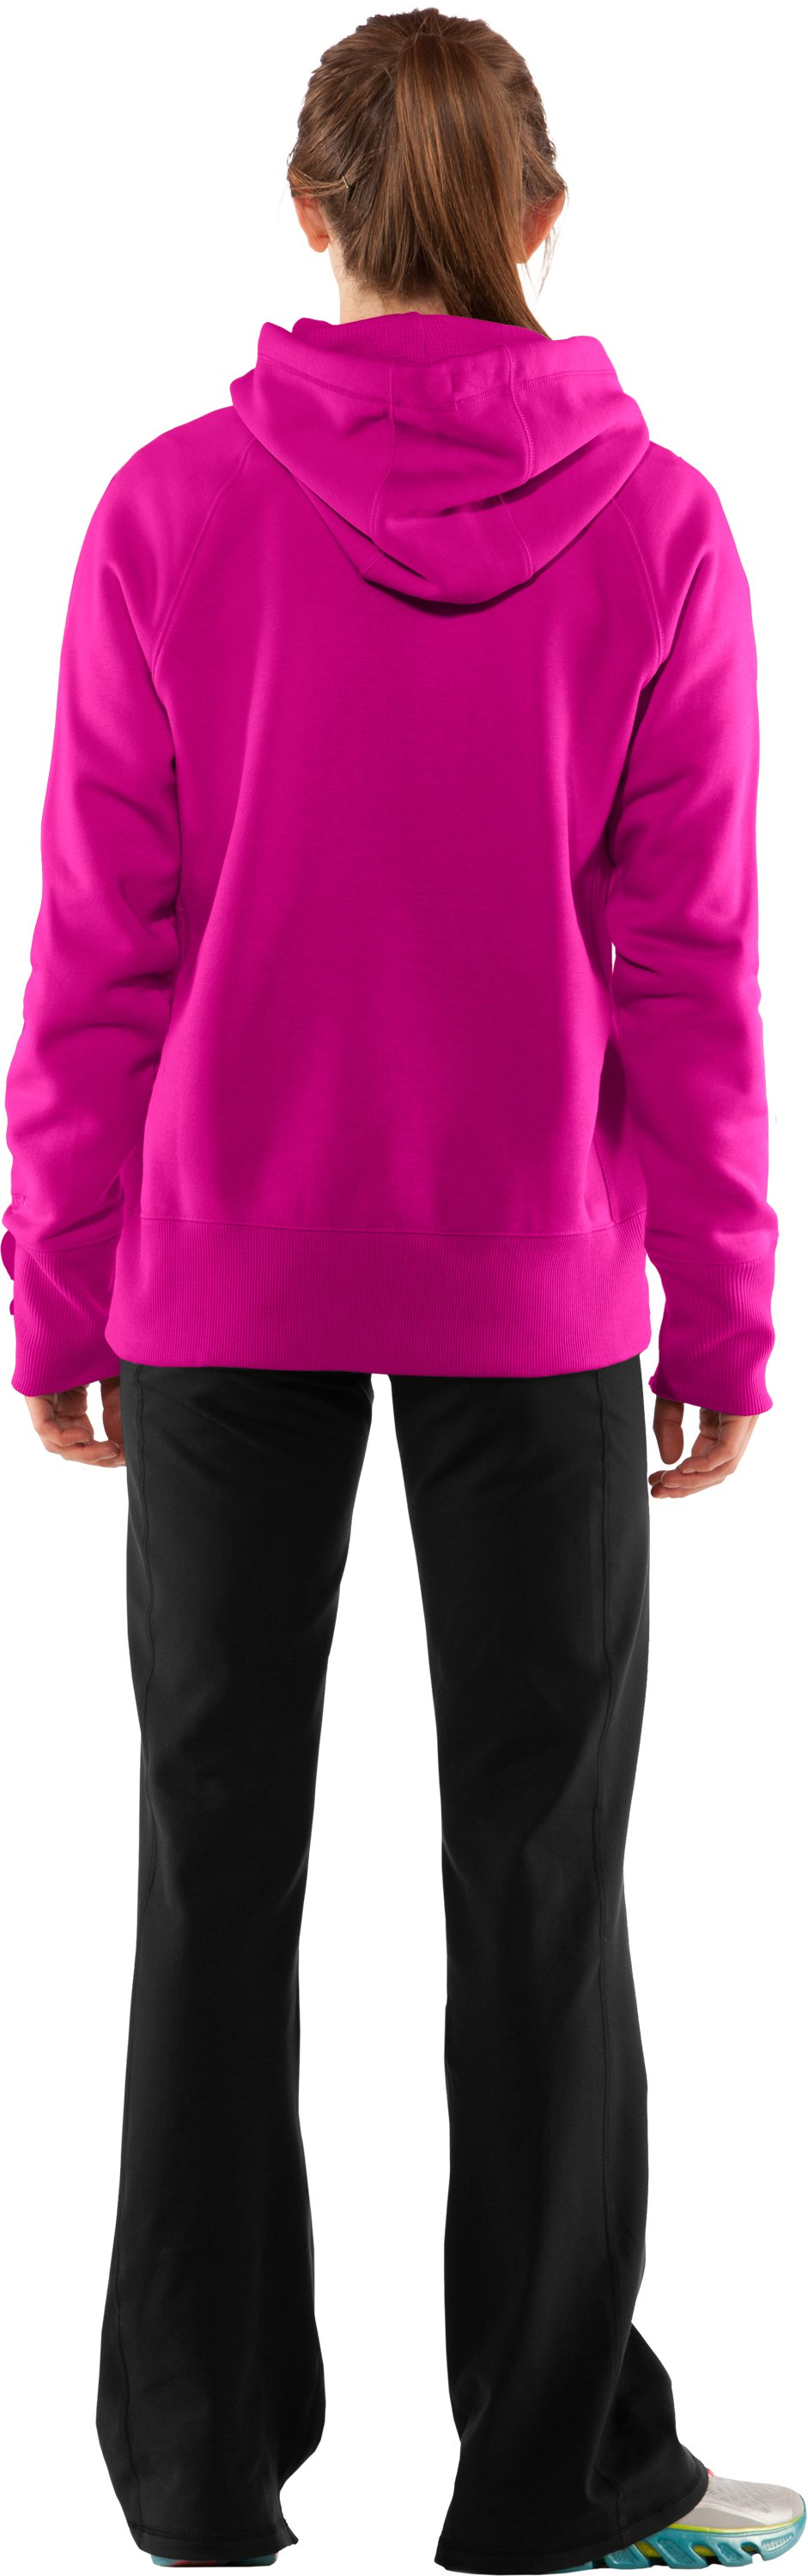 Women's Charged Cotton® Storm Hoodie, Tropic Pink, Back